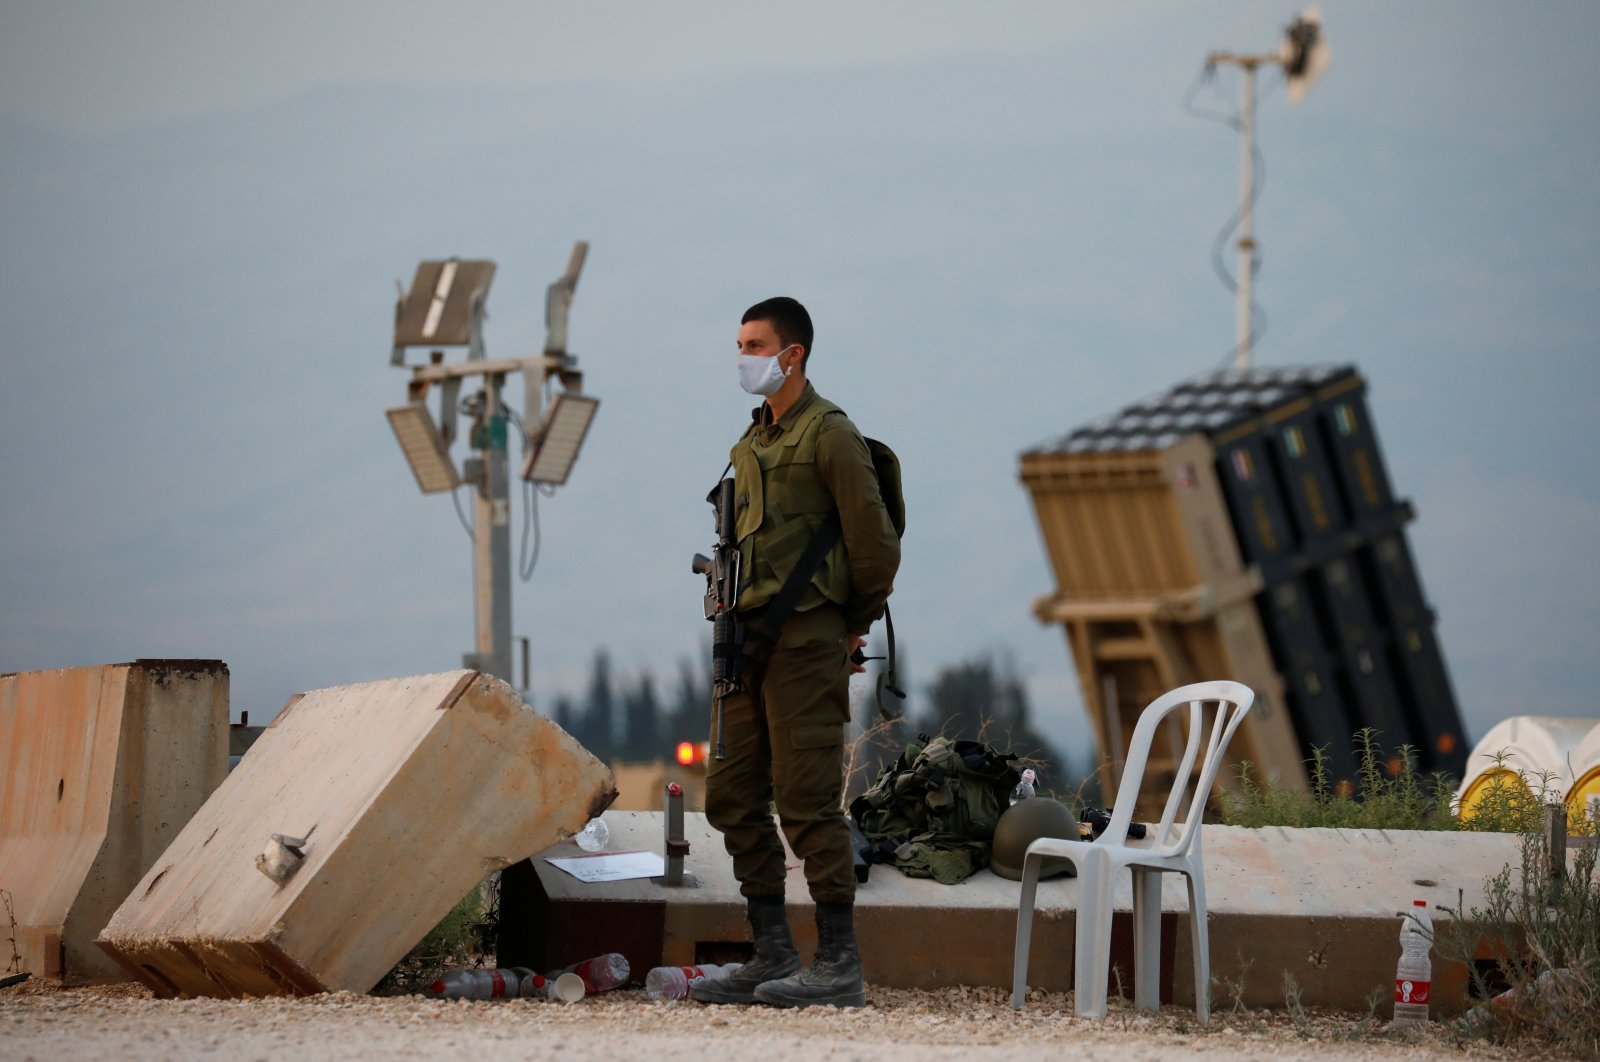 An Israeli soldier stands guard next to an Iron Dome anti-missile system near the Israel's northern border with Lebanon, July 27, 2020. (REUTERS Photo)